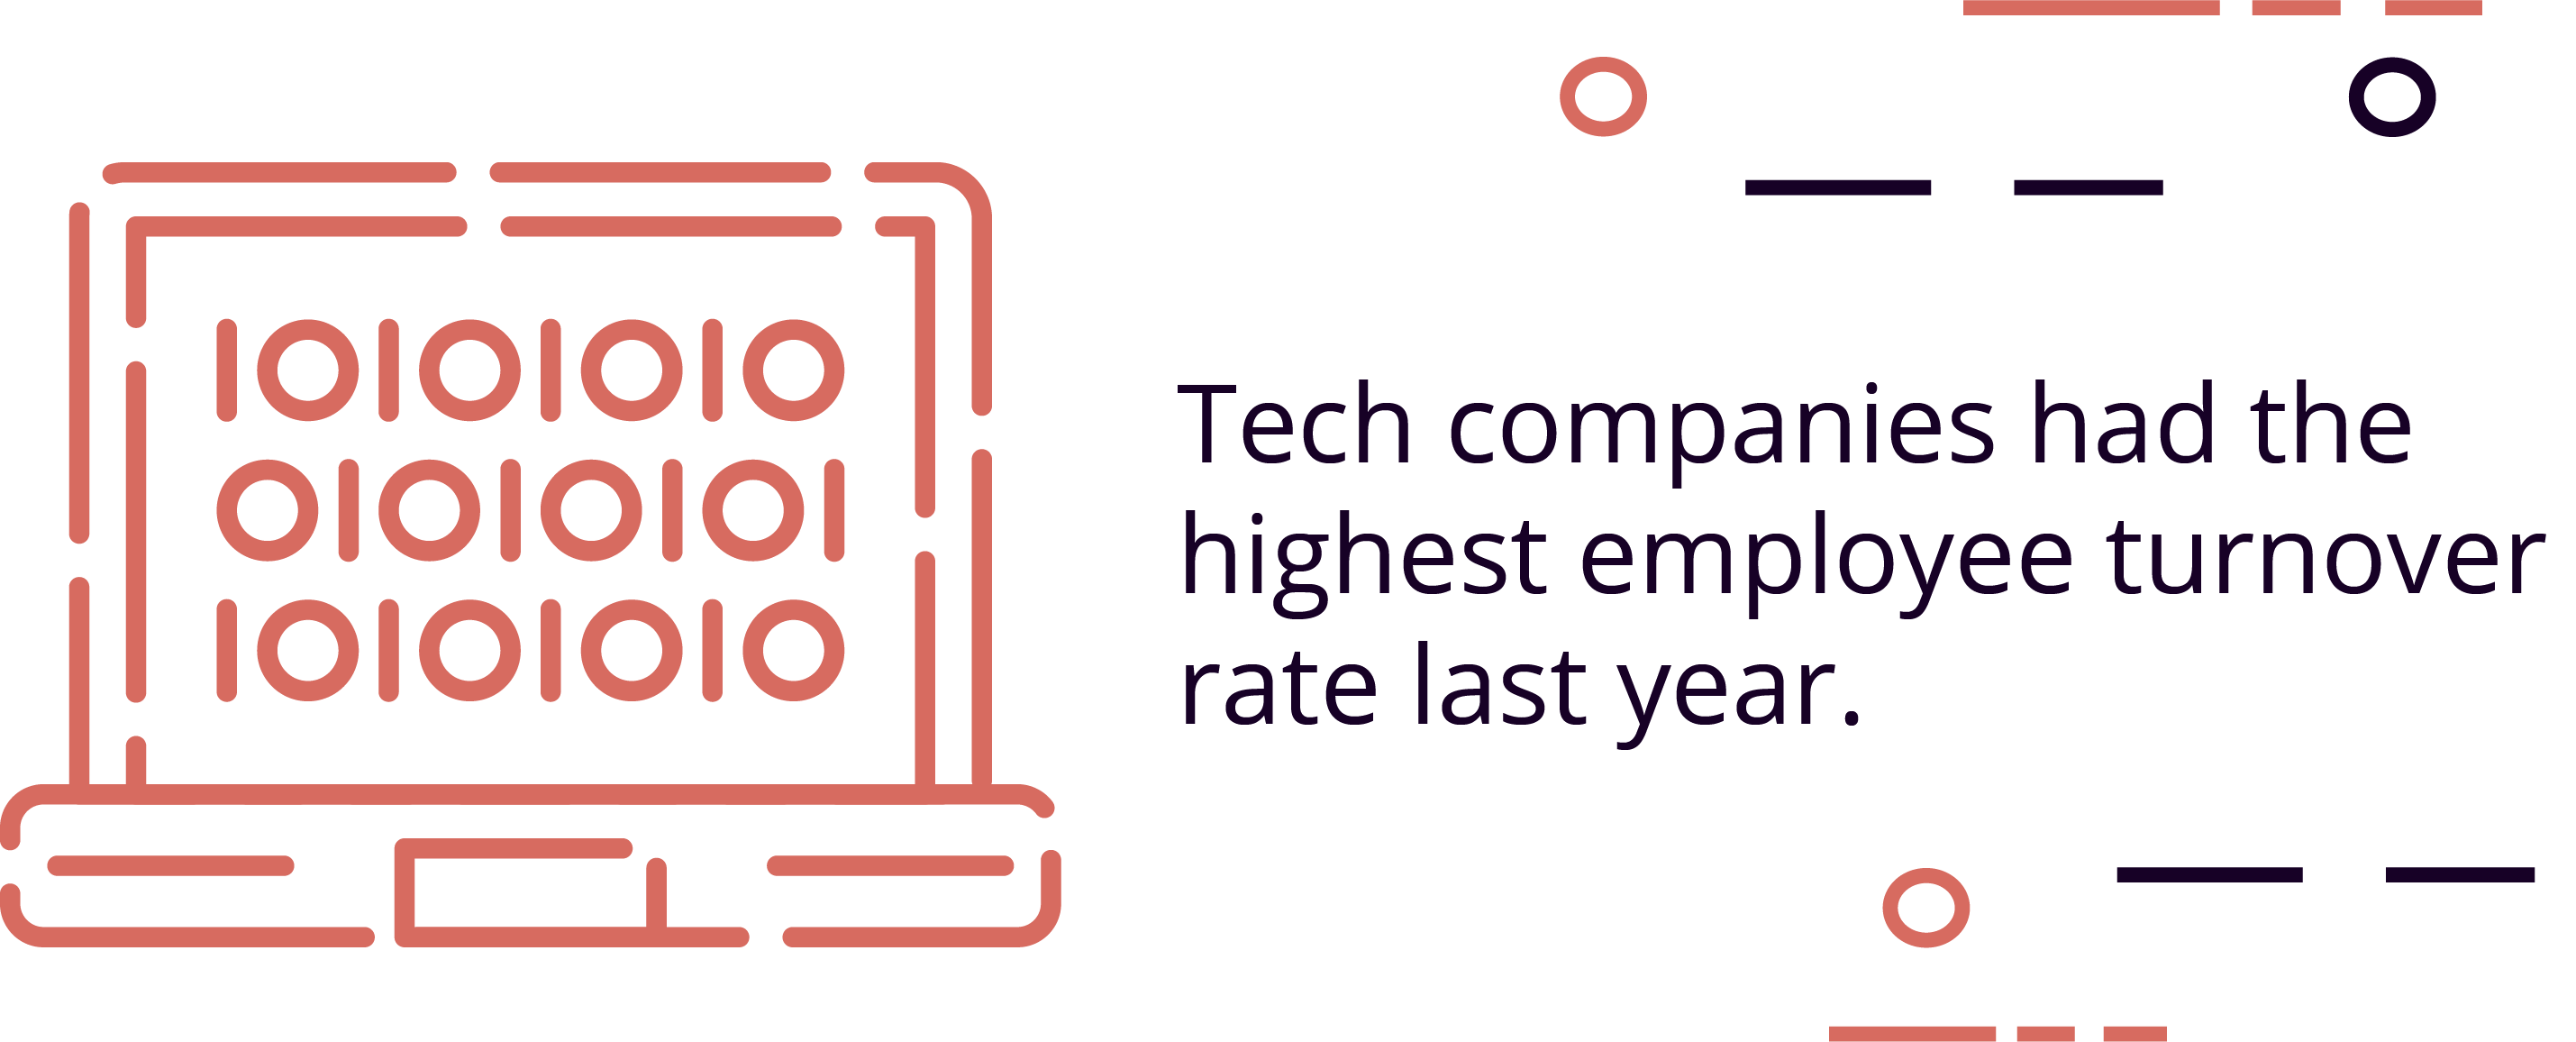 Tech companies had the highest employee turnover rate last year